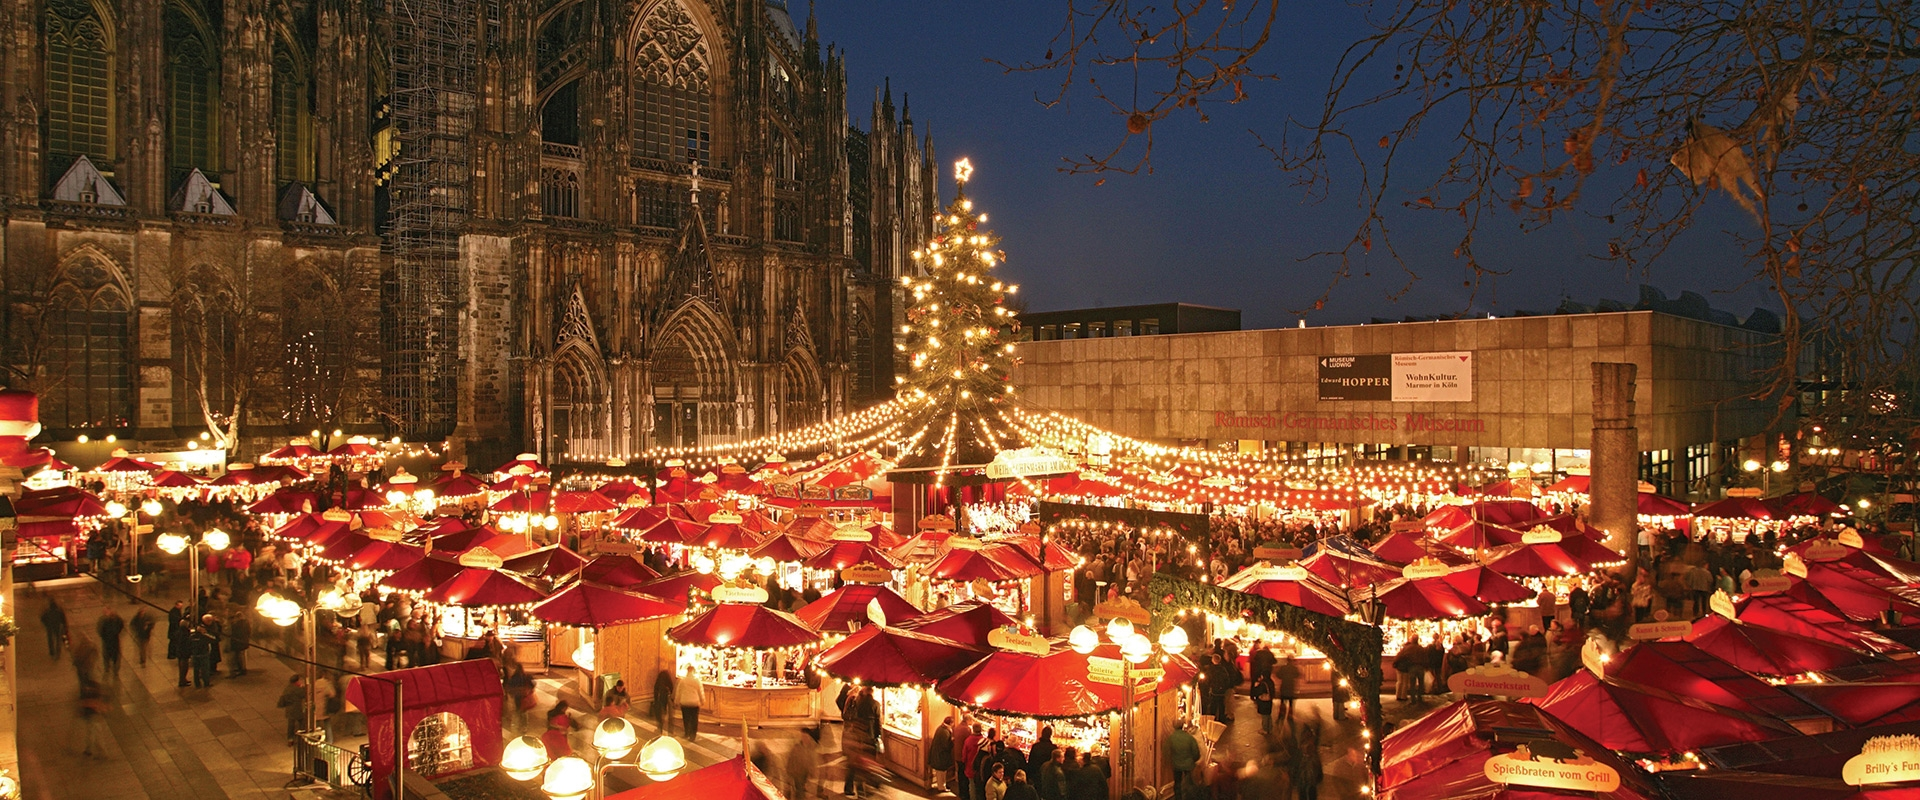 Christmas Markets In Paris 2019 Festive Christmas Markets with Magnificent Europe and Paris (2019